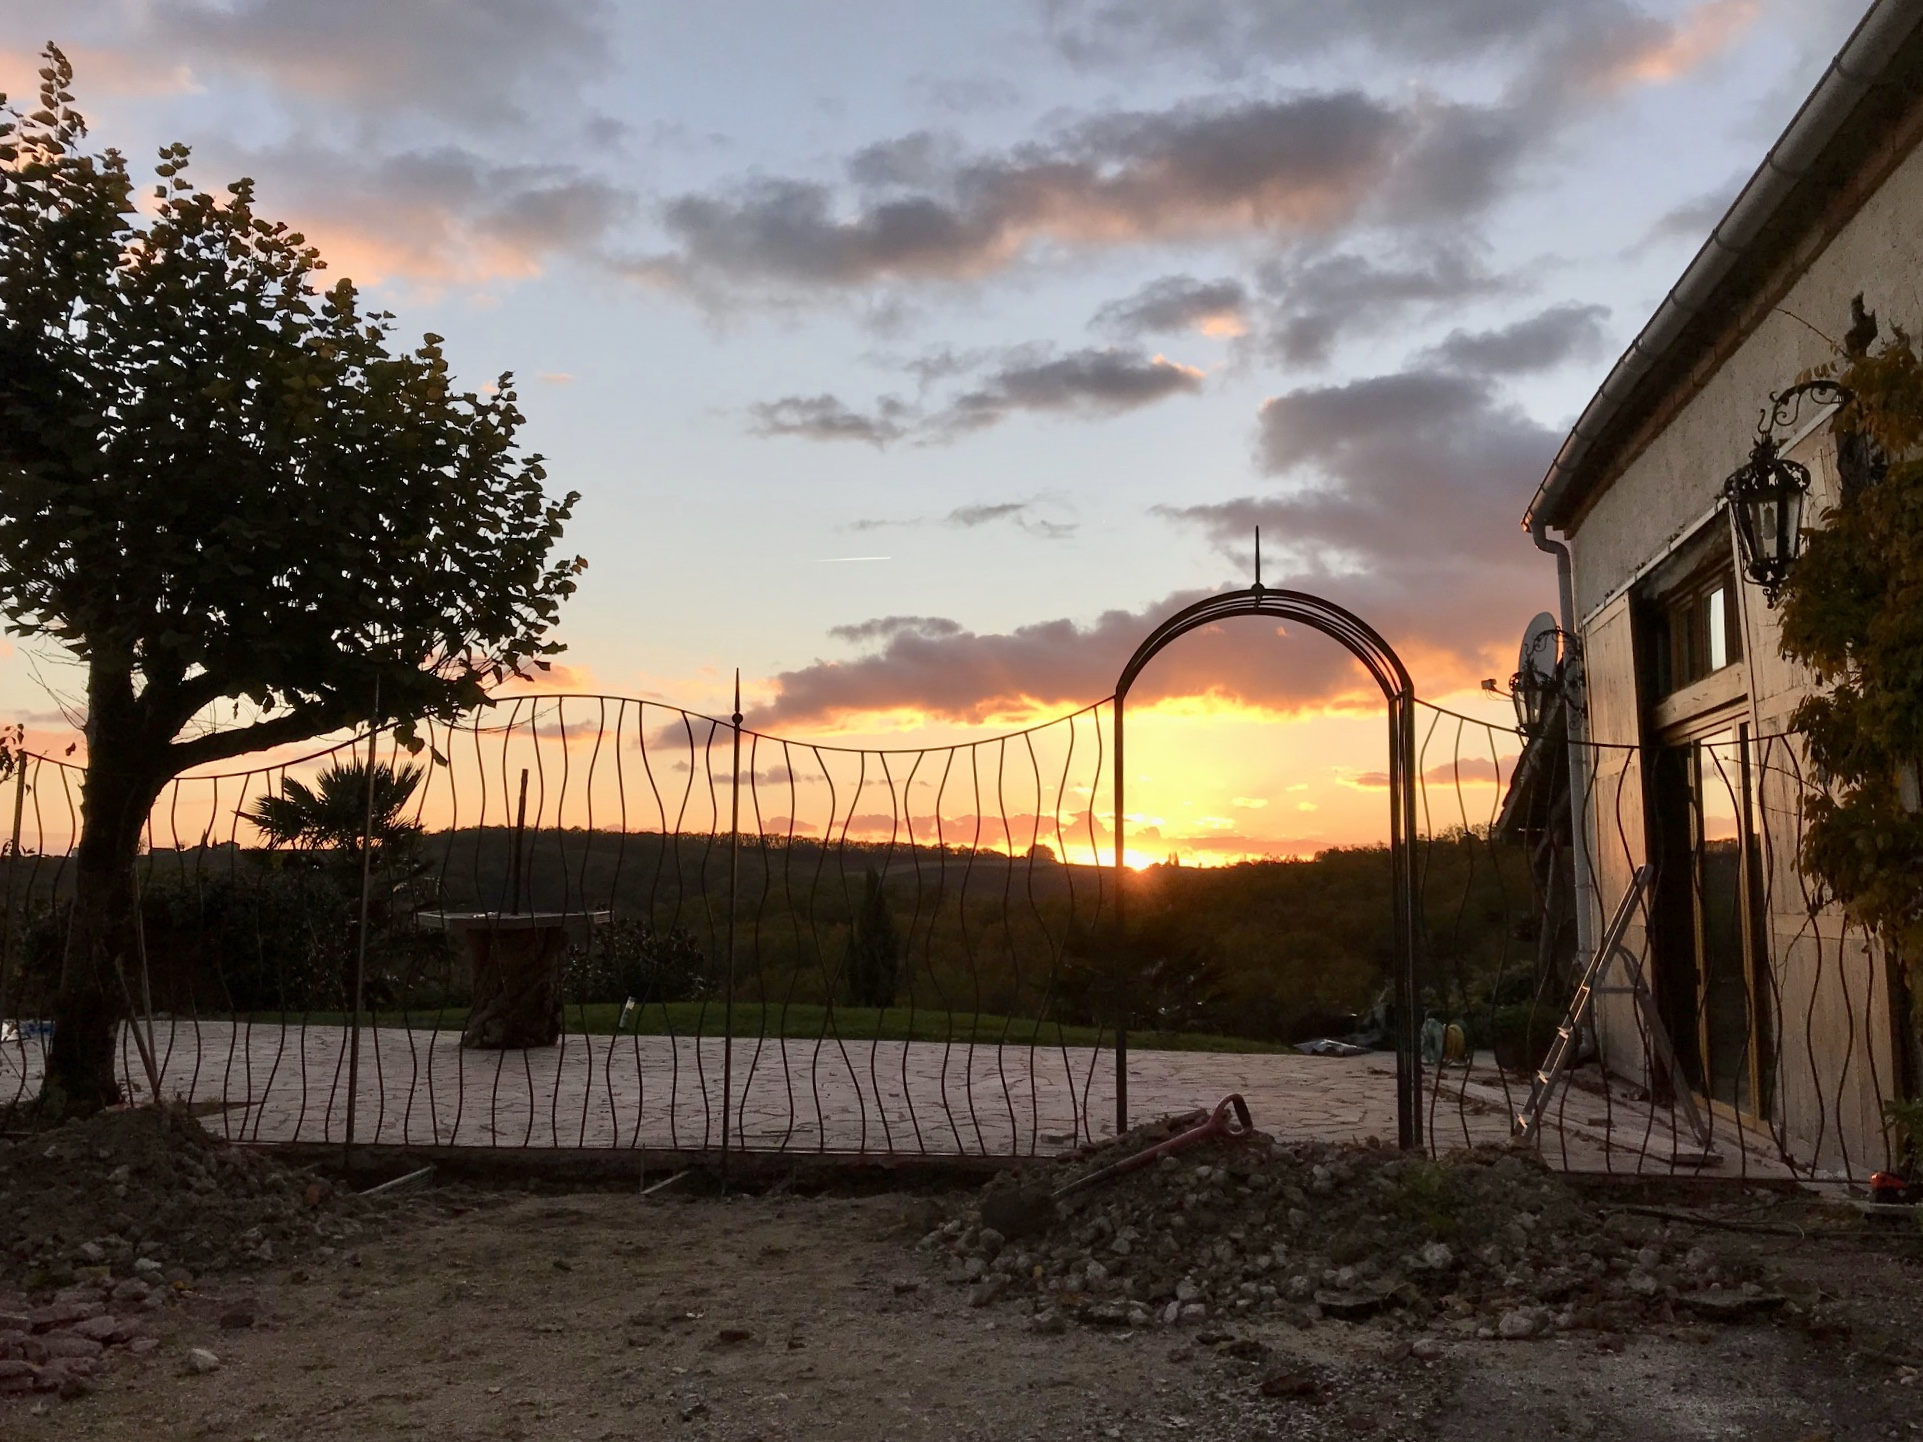 A view of the trellis and arch taken by the clients at sunset that day. Beautiful!